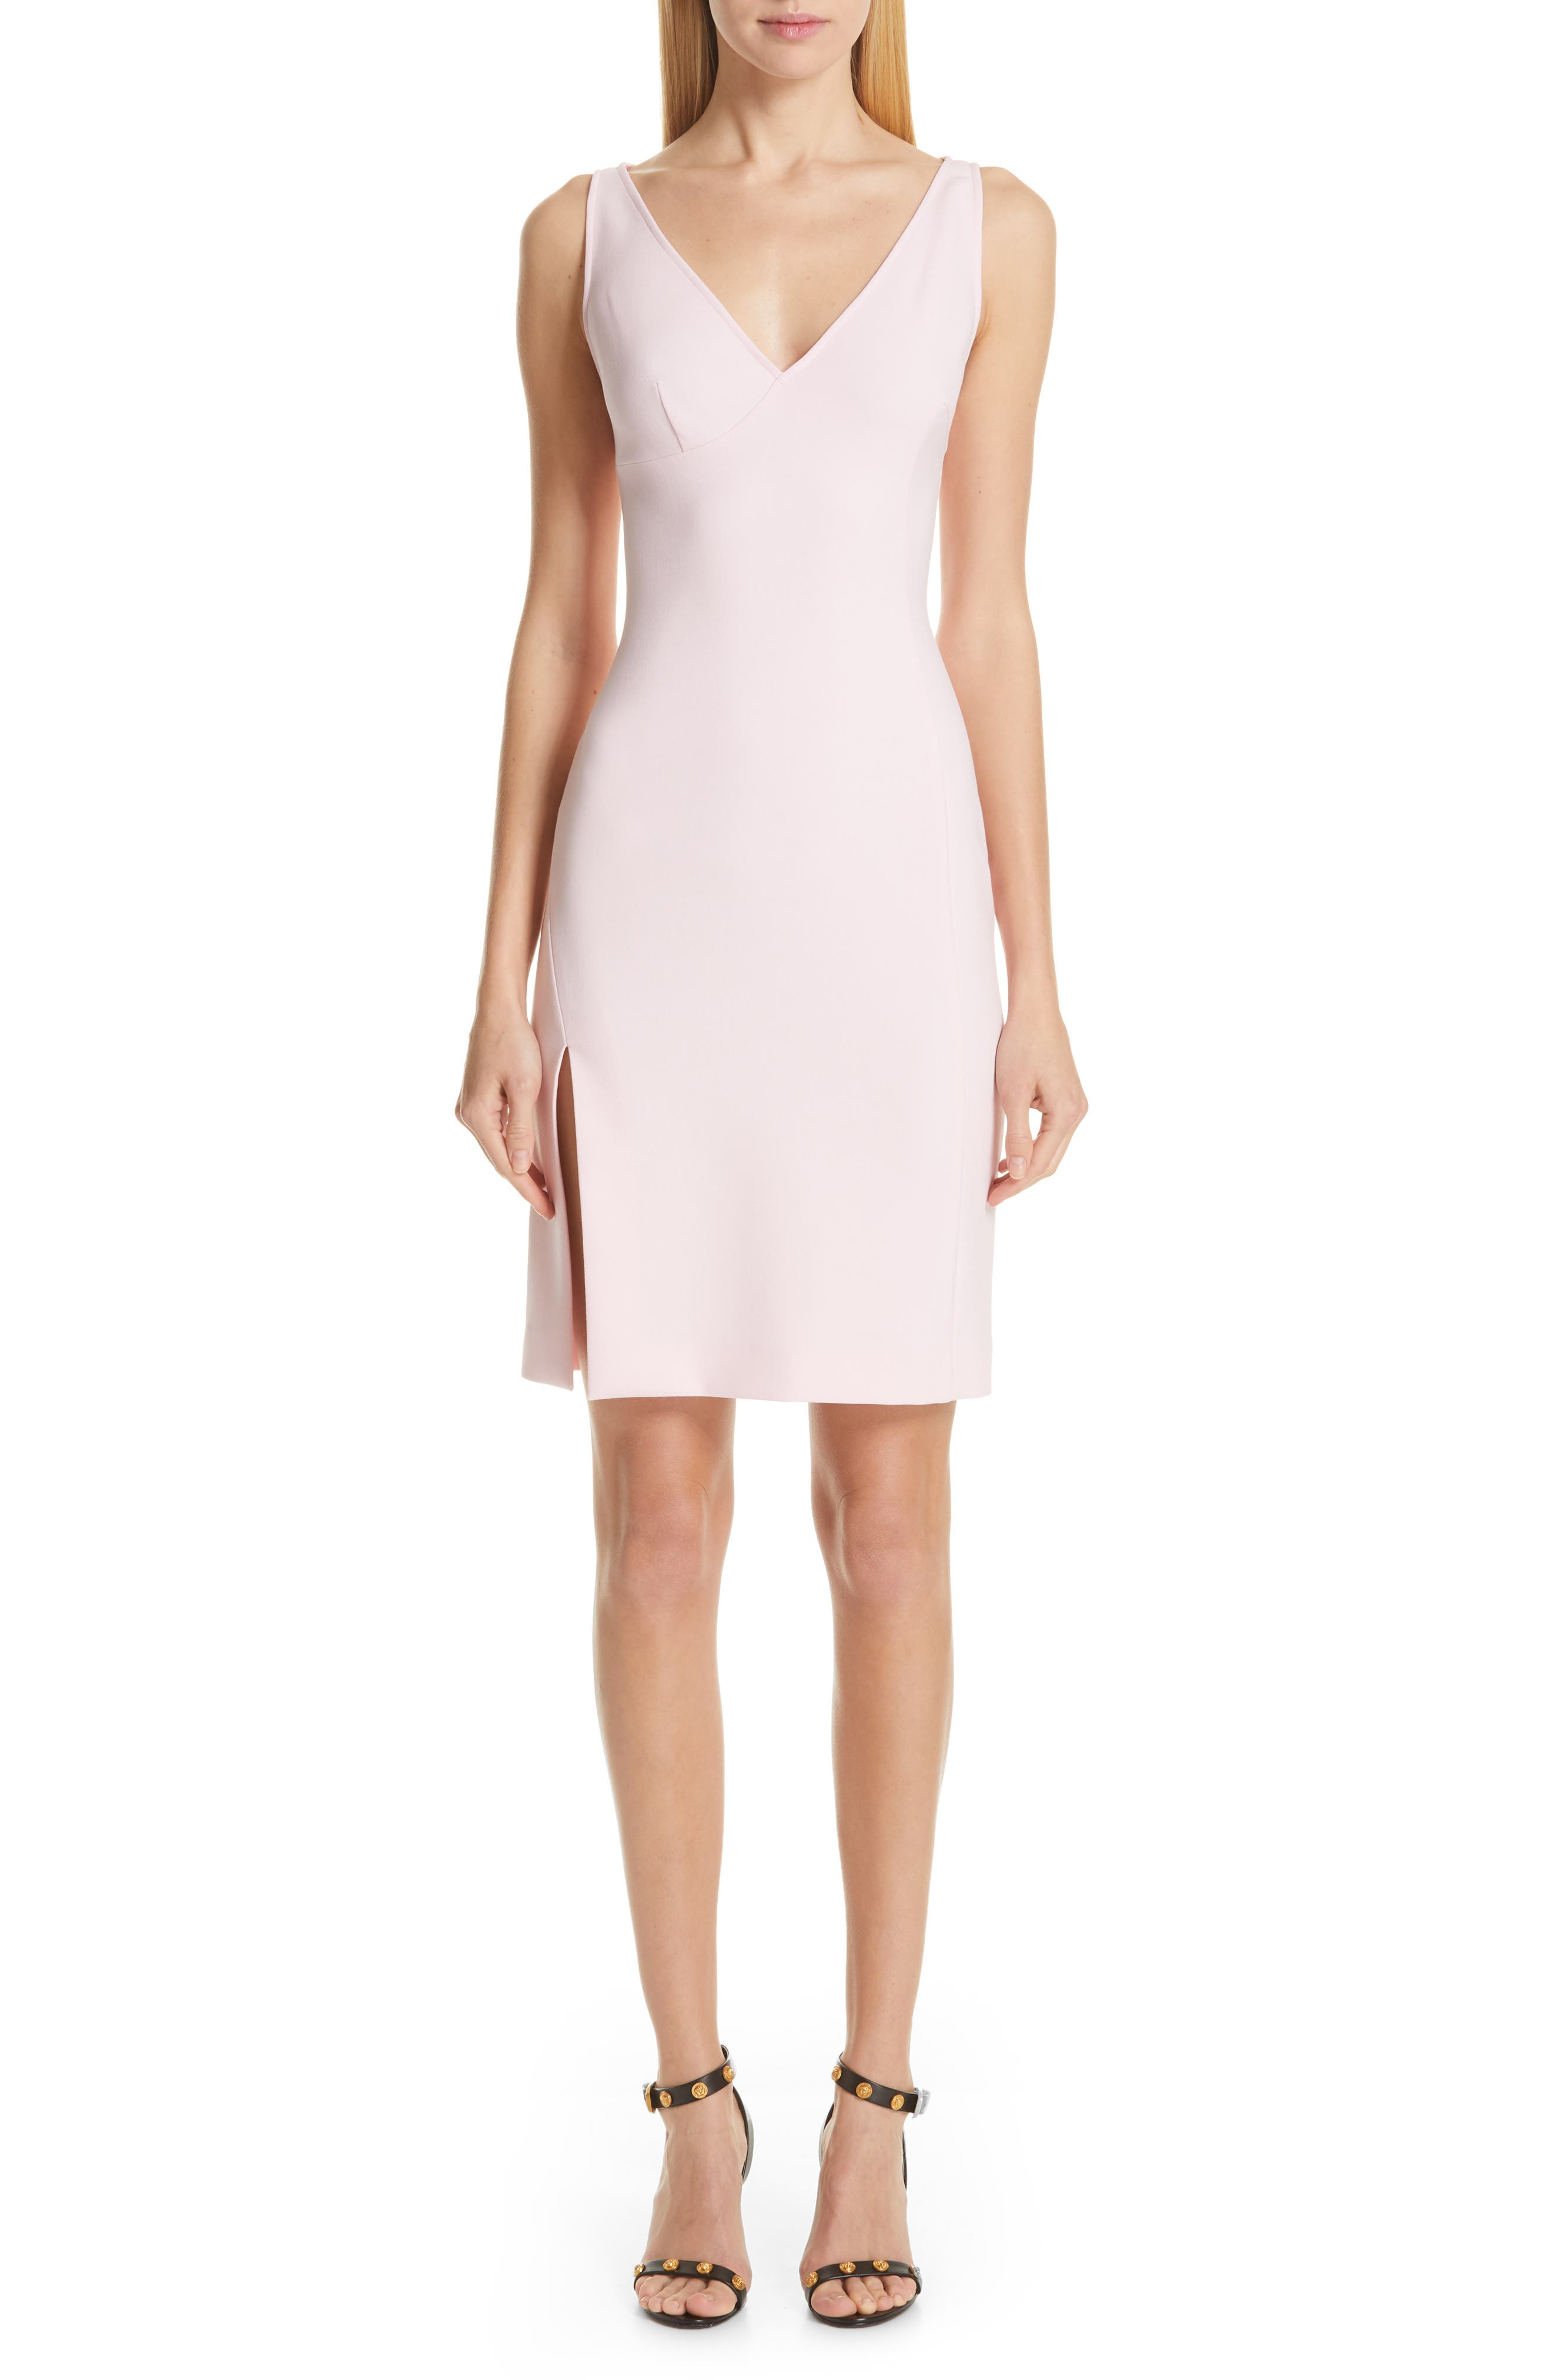 VERSACE COLLECTION Stretch Cady Sheath Dress, Main, color, PASTEL ROSE